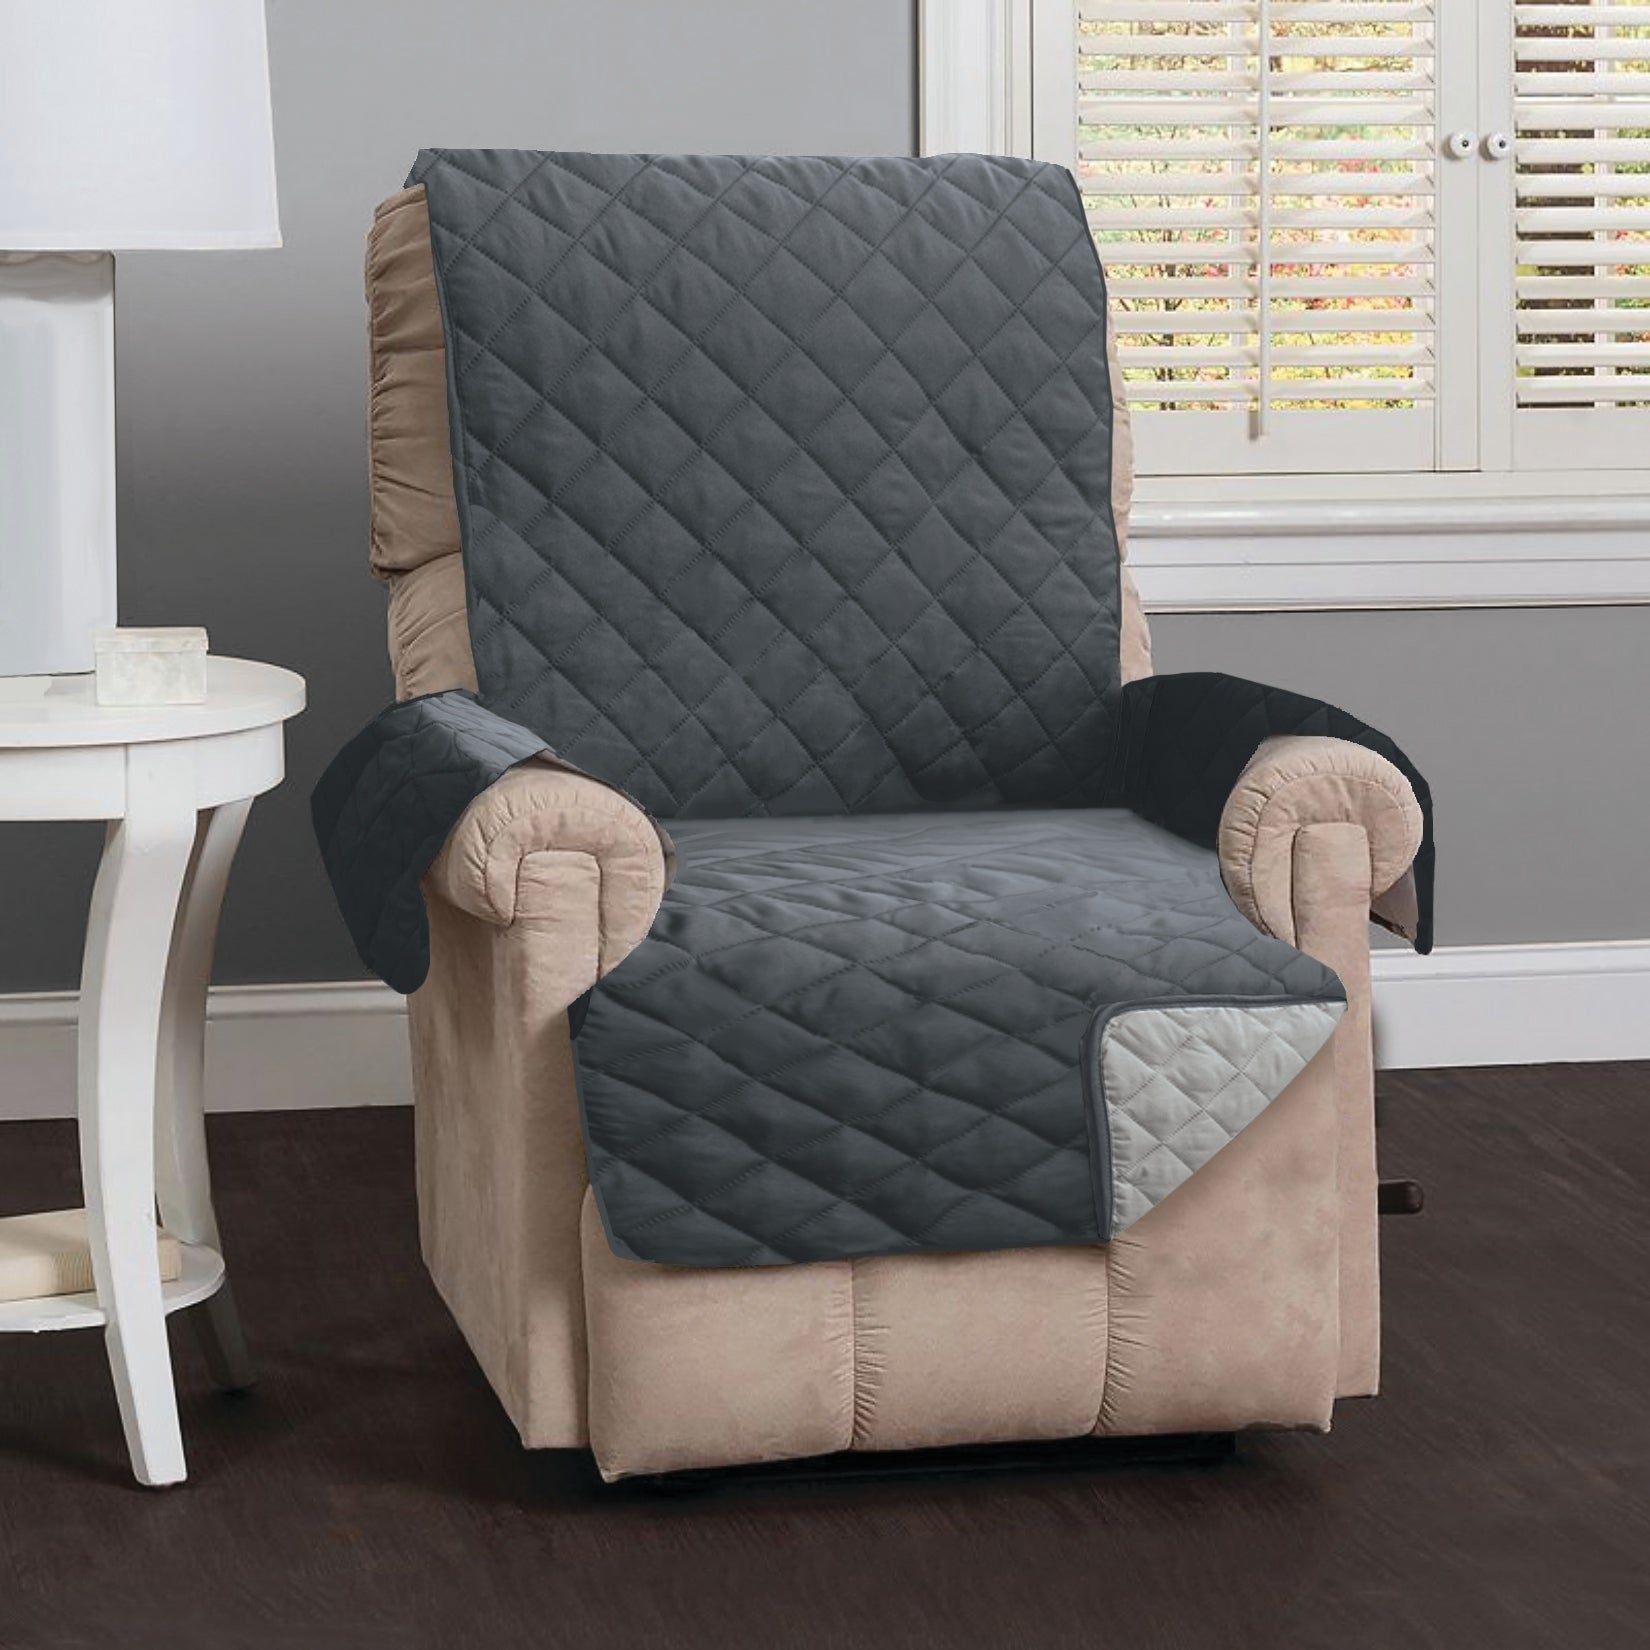 Delicieux Home Fashion Designs Kaylee Collection Quilted Reversible Recliner Protector